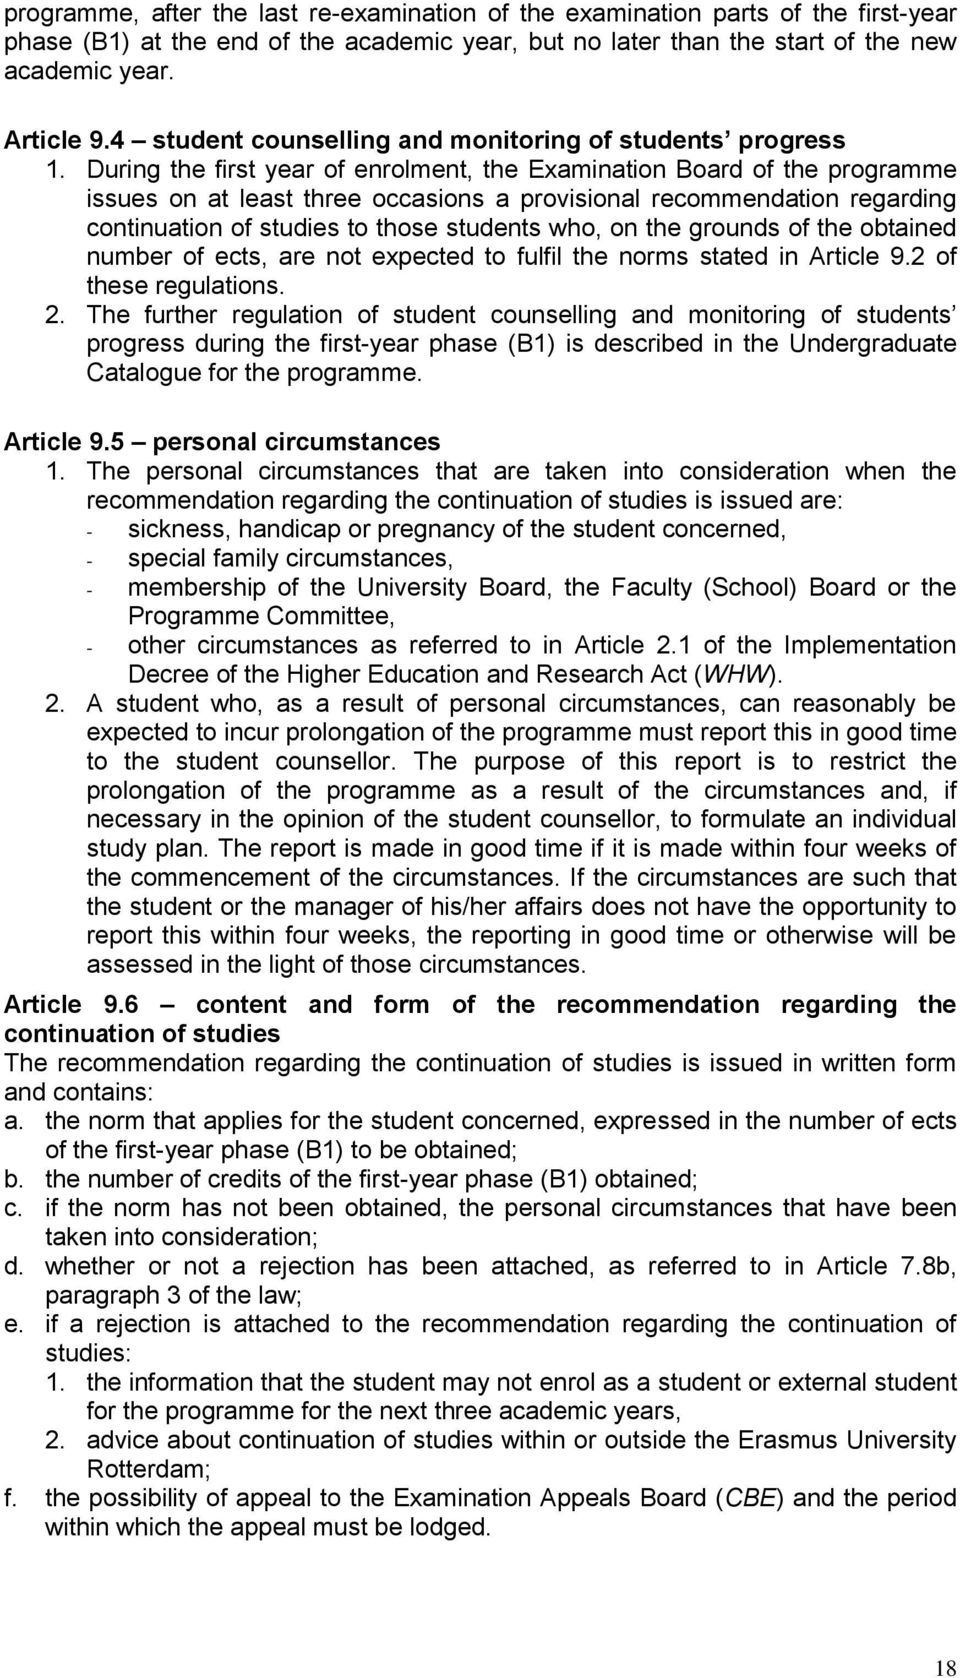 During the first year of enrolment, the Examination Board of the programme issues on at least three occasions a provisional recommendation regarding continuation of studies to those students who, on